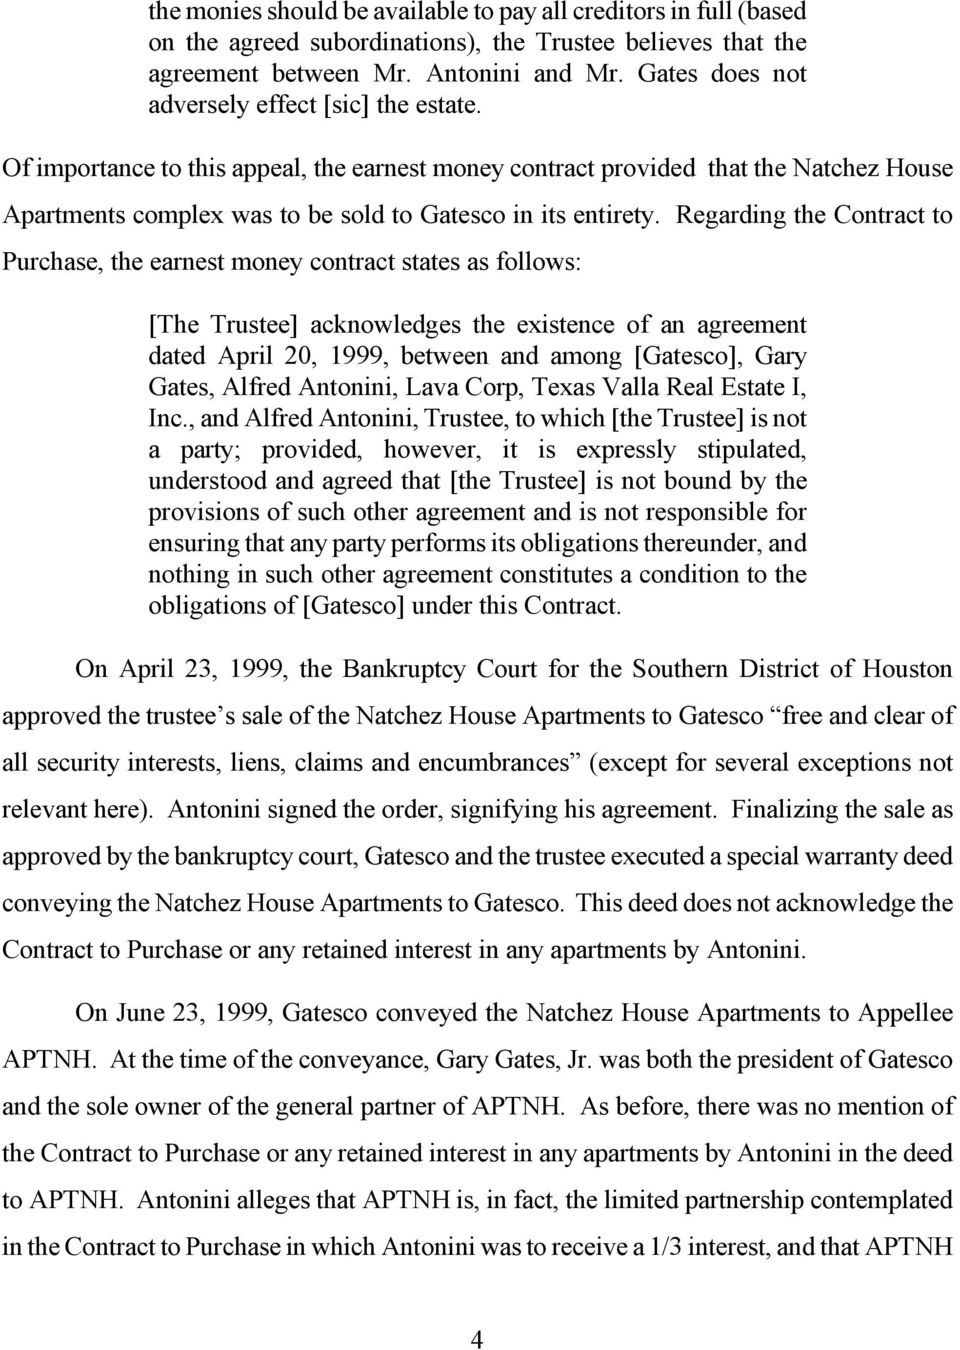 Regarding the Contract to Purchase, the earnest money contract states as follows: [The Trustee] acknowledges the existence of an agreement dated April 20, 1999, between and among [Gatesco], Gary